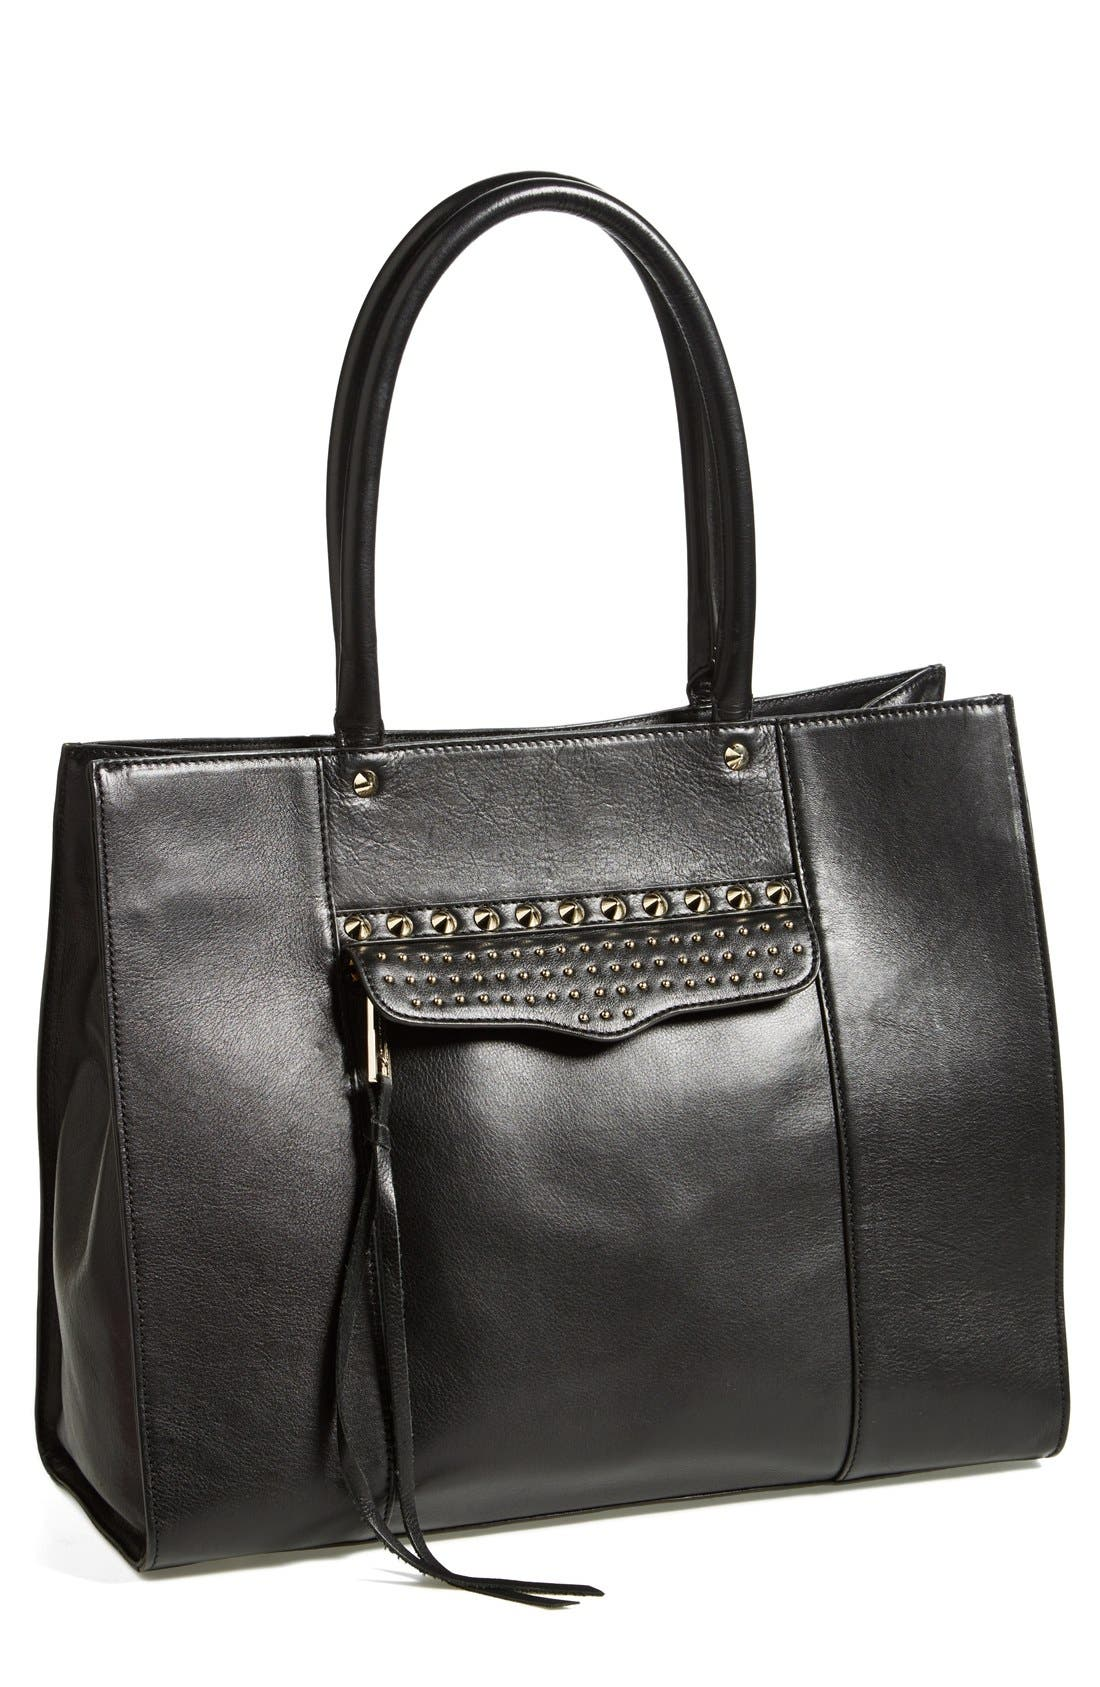 Main Image - Rebecca Minkoff 'Medium MAB' Studded Tote